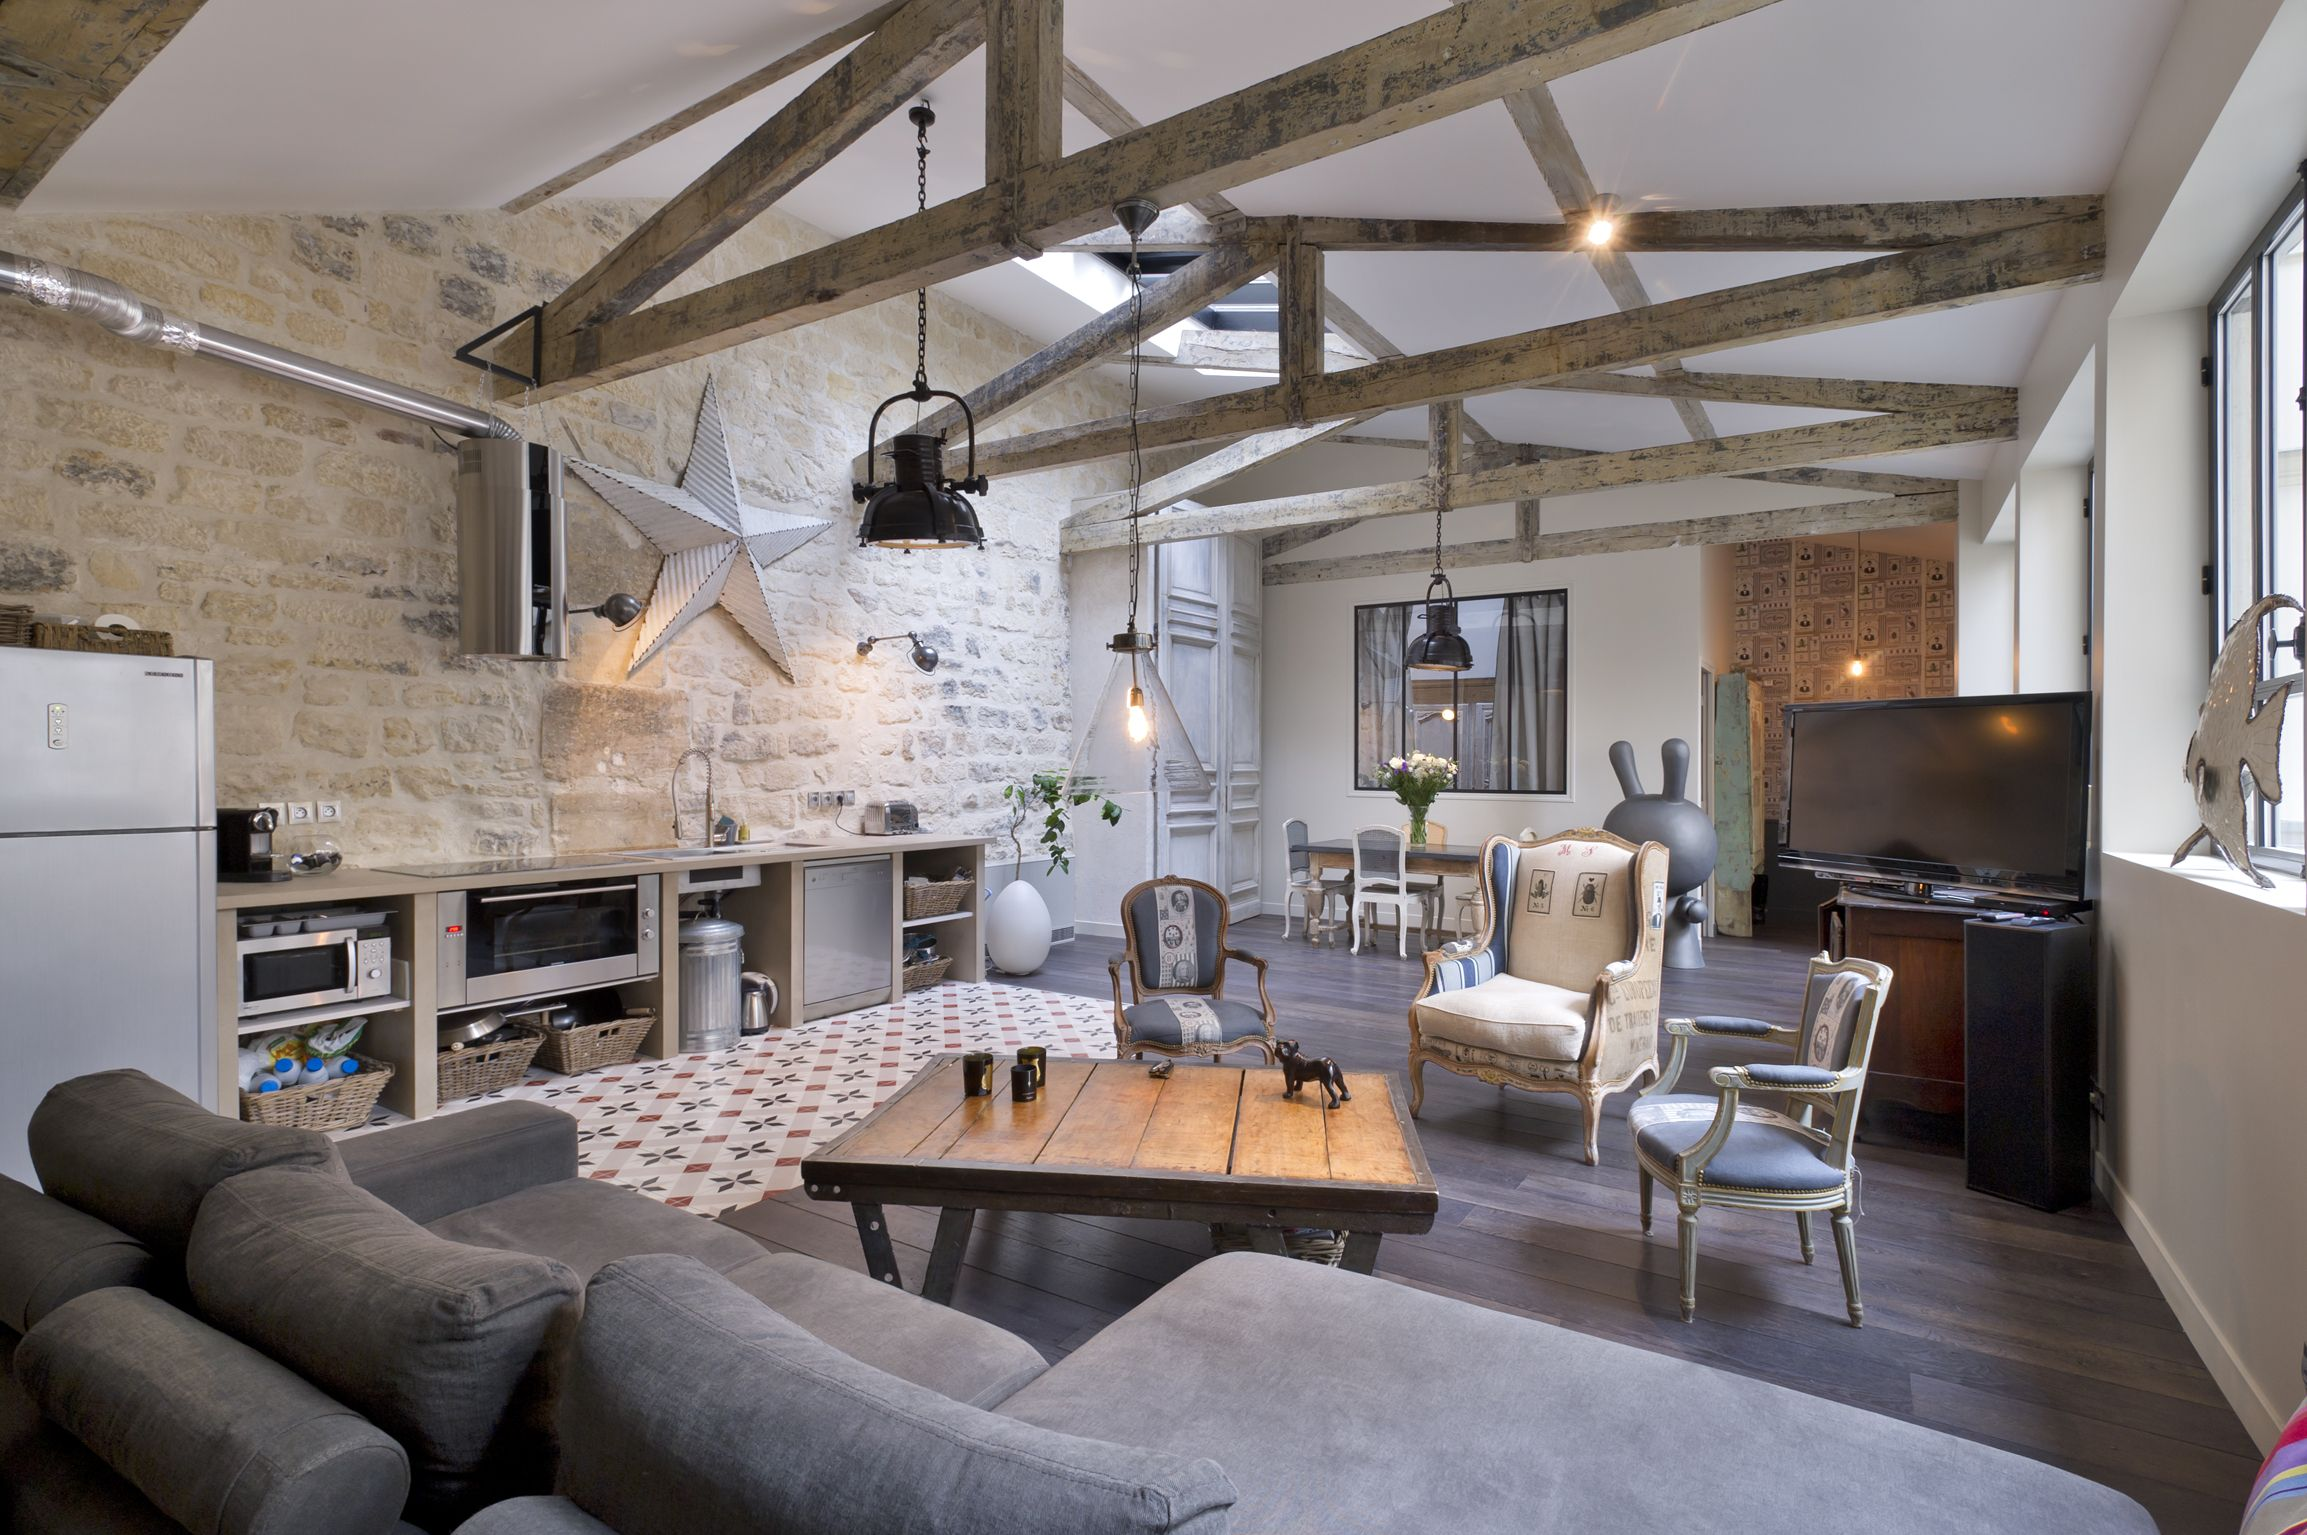 Eclectic Rustic Industrial Loft In Paris Love The Grey Couch,